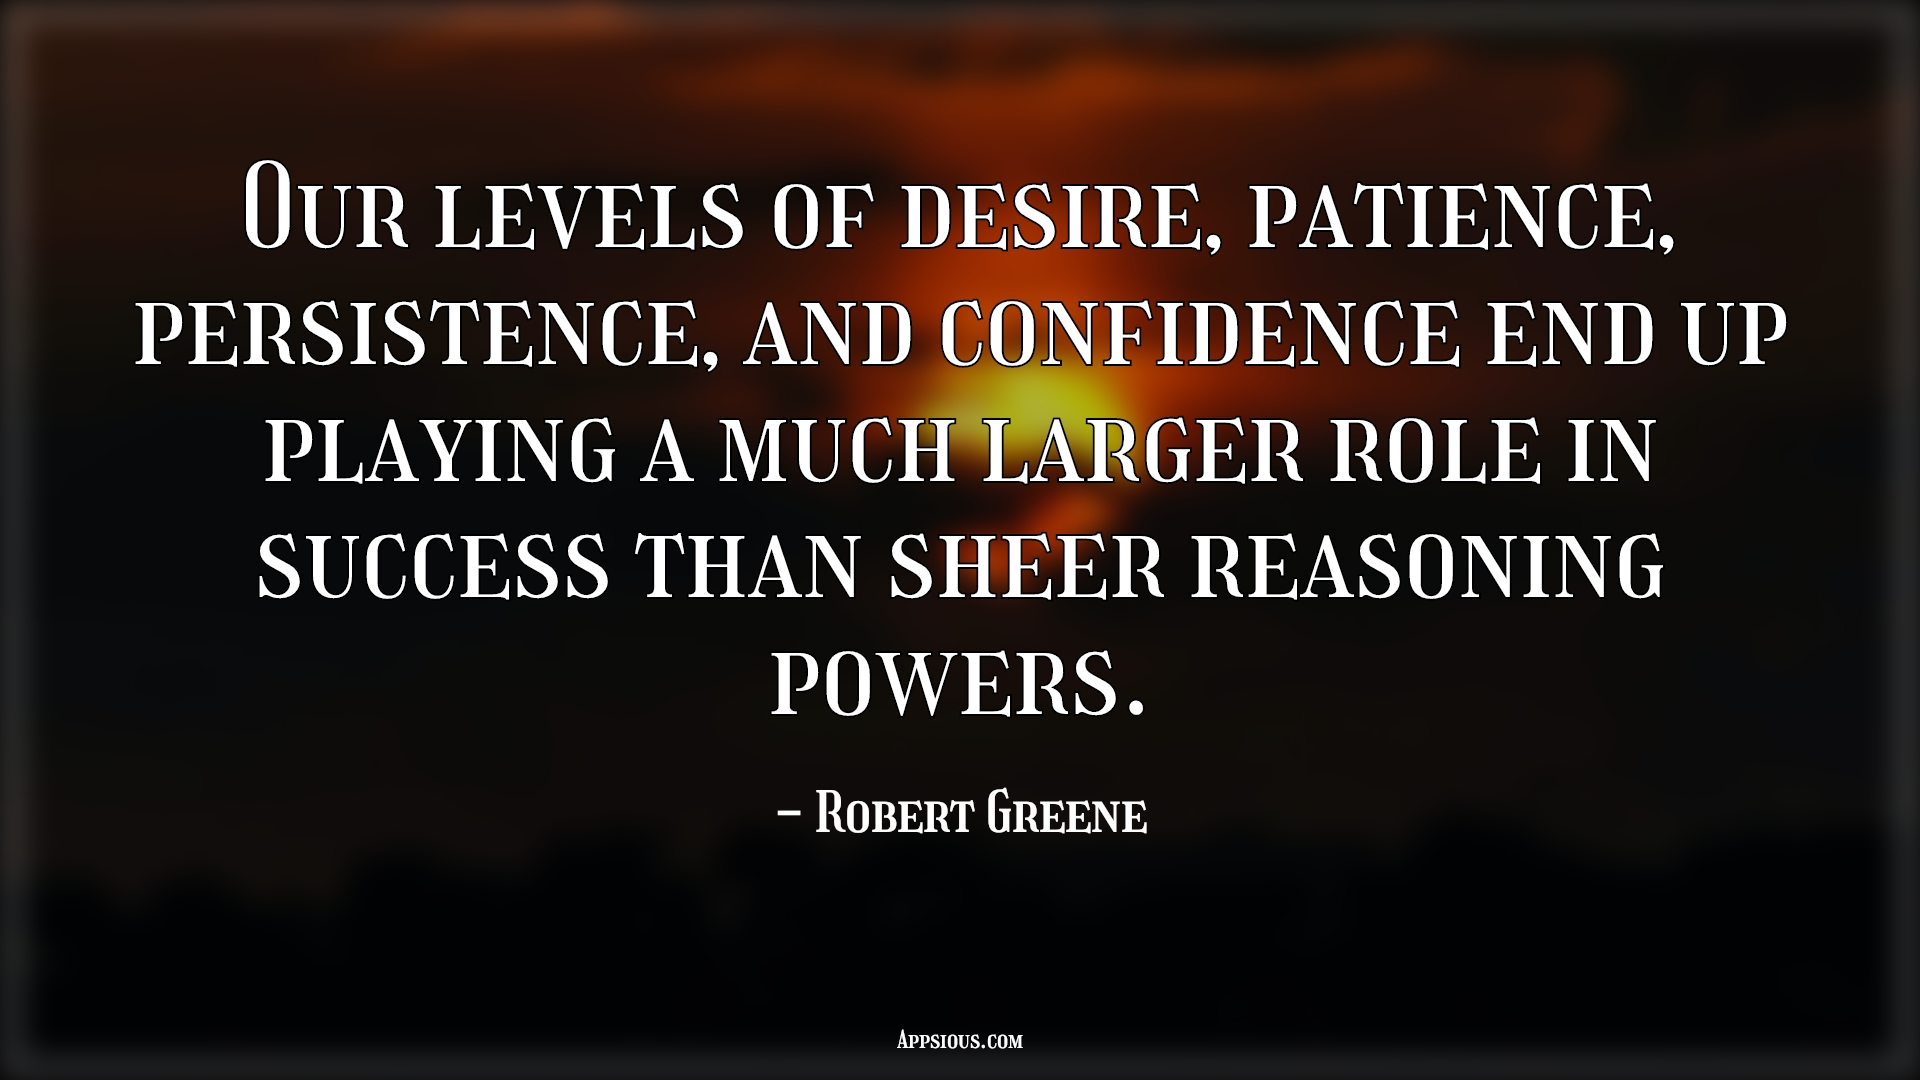 Our levels of desire, patience, persistence, and confidence end up playing a much larger role in success than sheer reasoning powers.